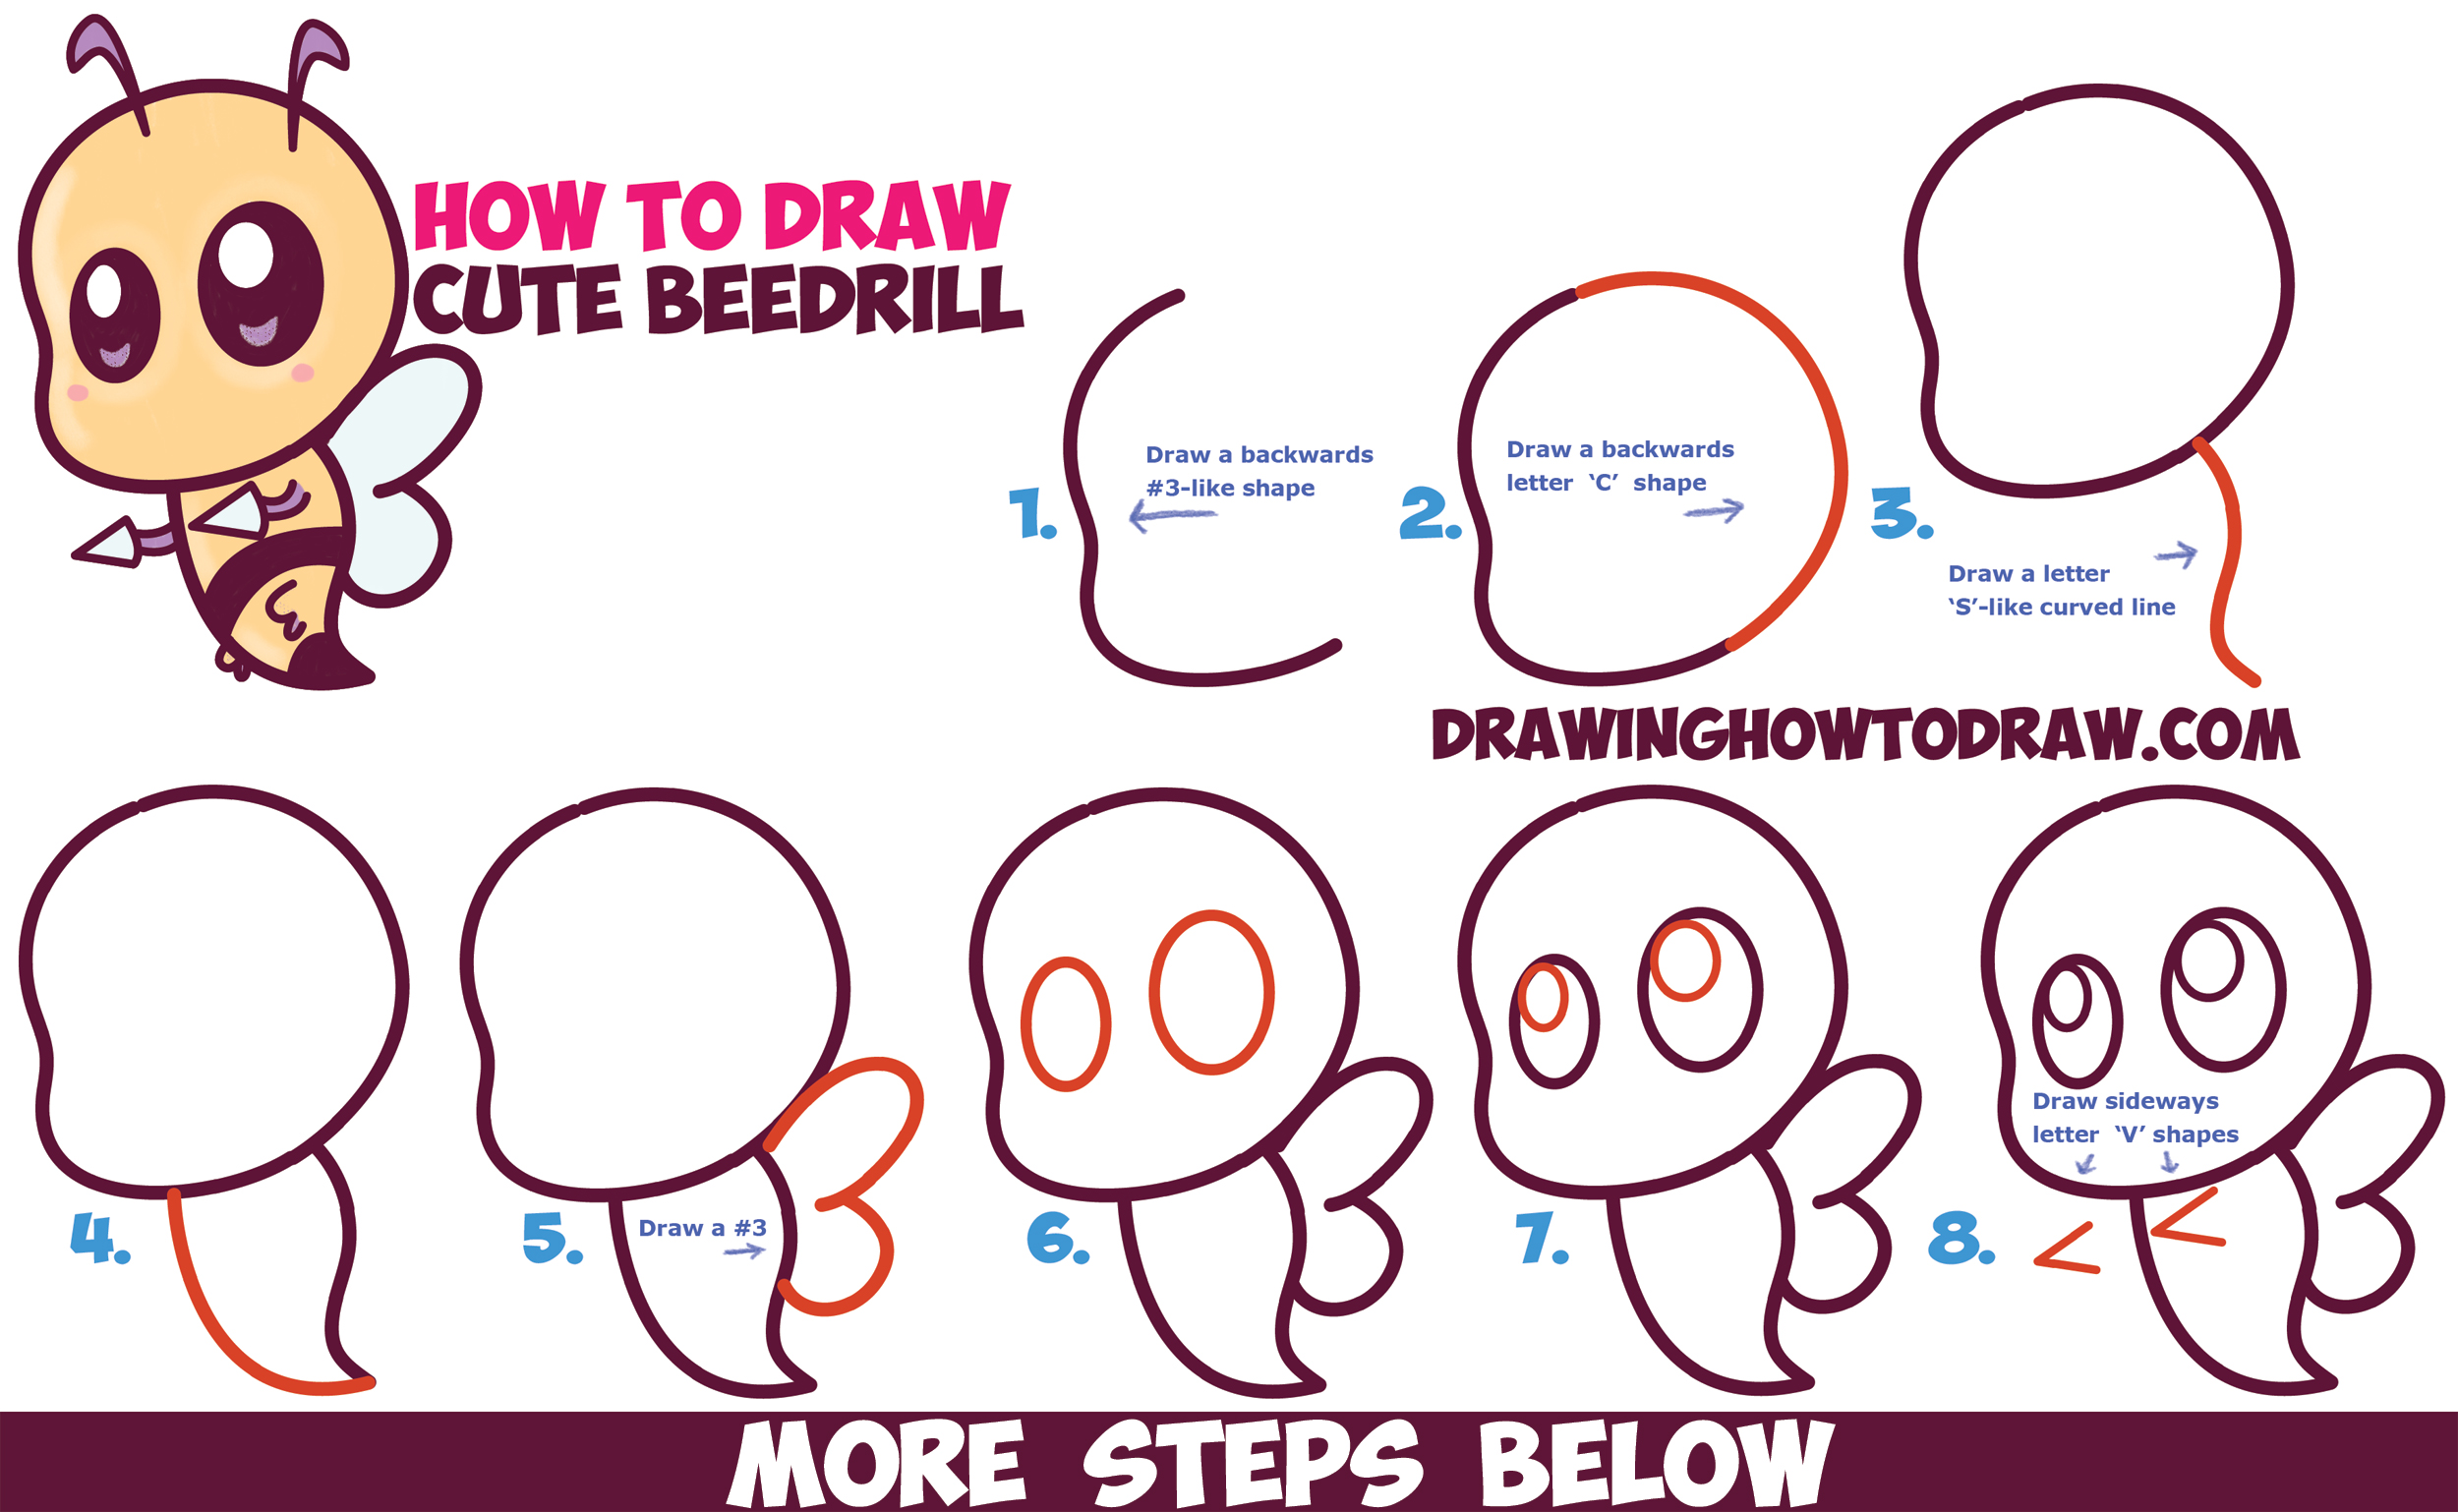 How to Draw Cute / Chibi / Kawaii Beedrill from Pokemon Easy Step by Step Drawing Tutorial for Beginners